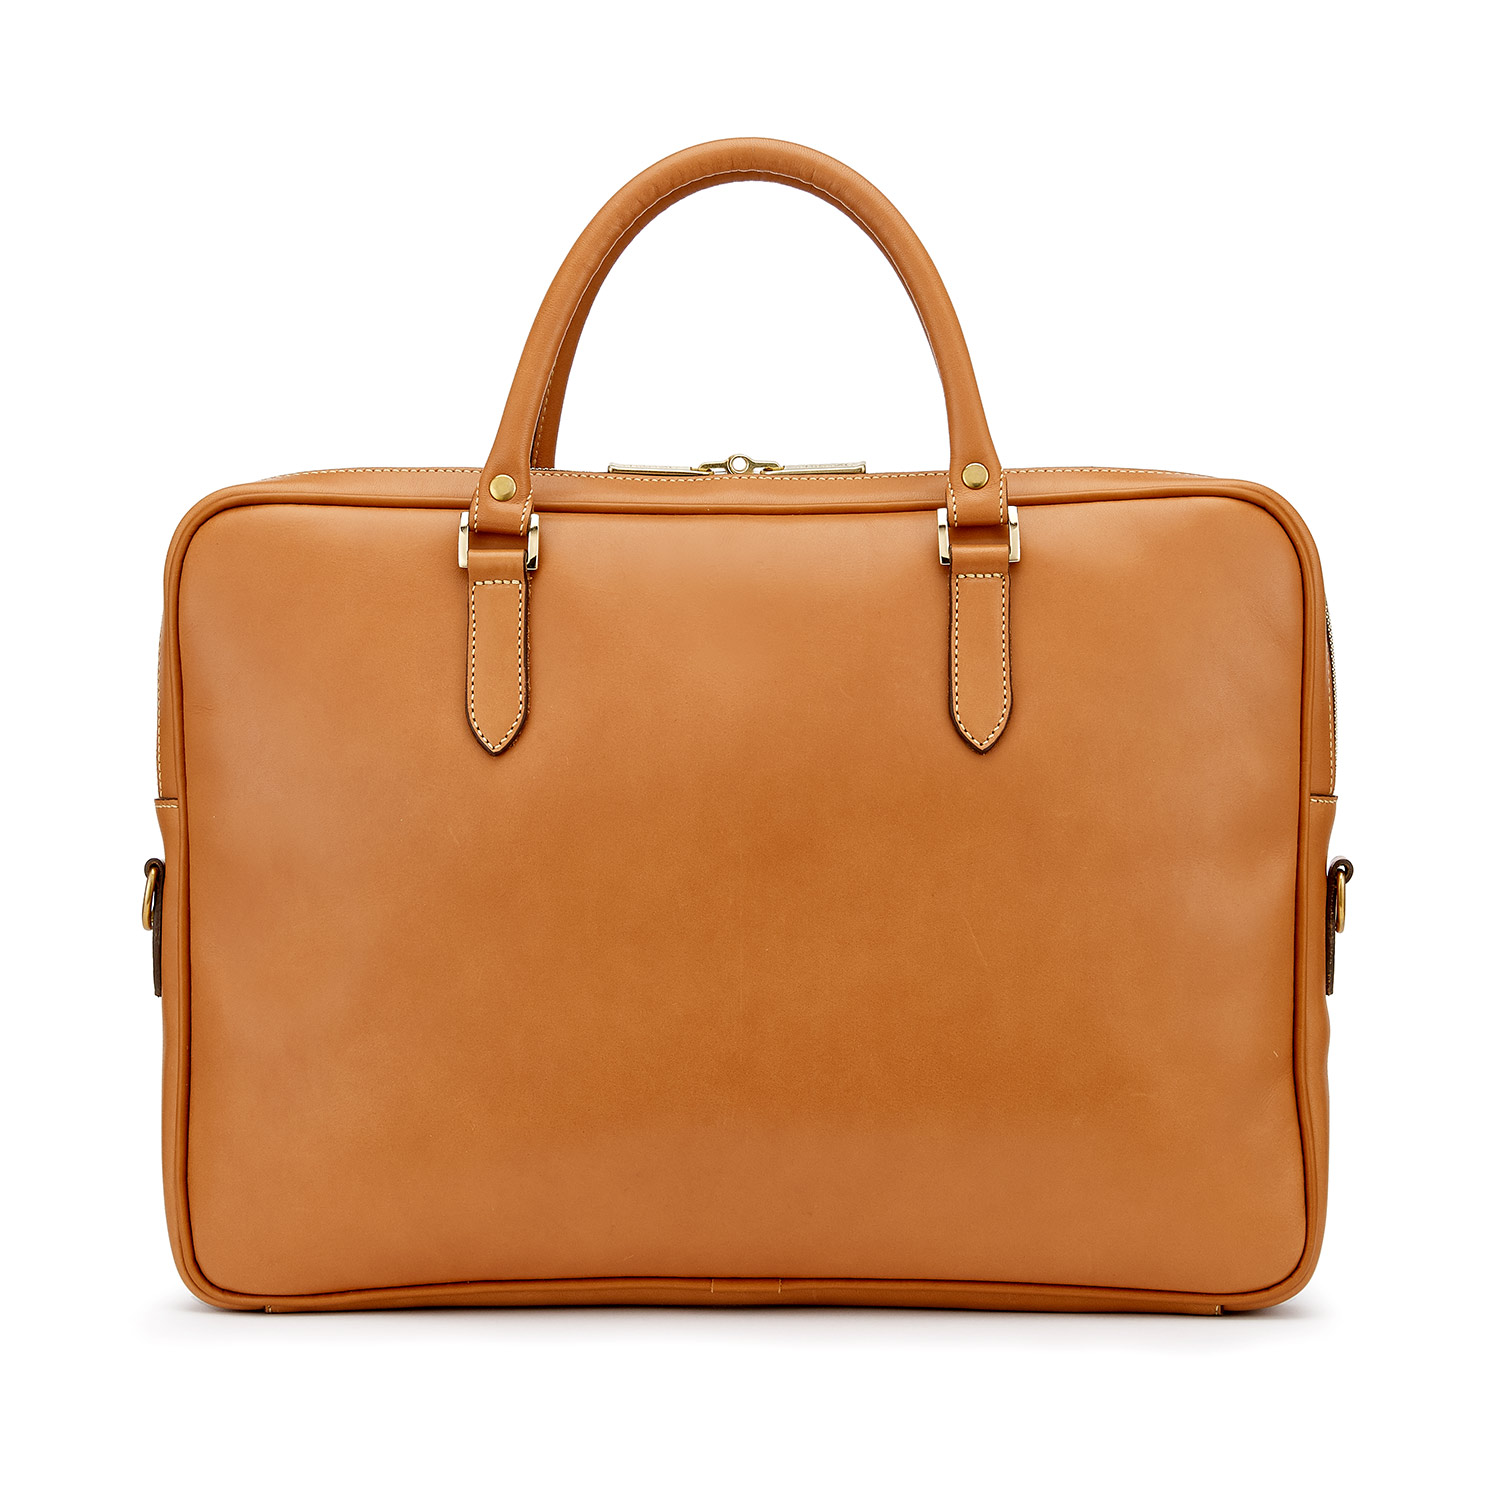 Tusting Piccadilly Leather Briefcase in Tan Rear